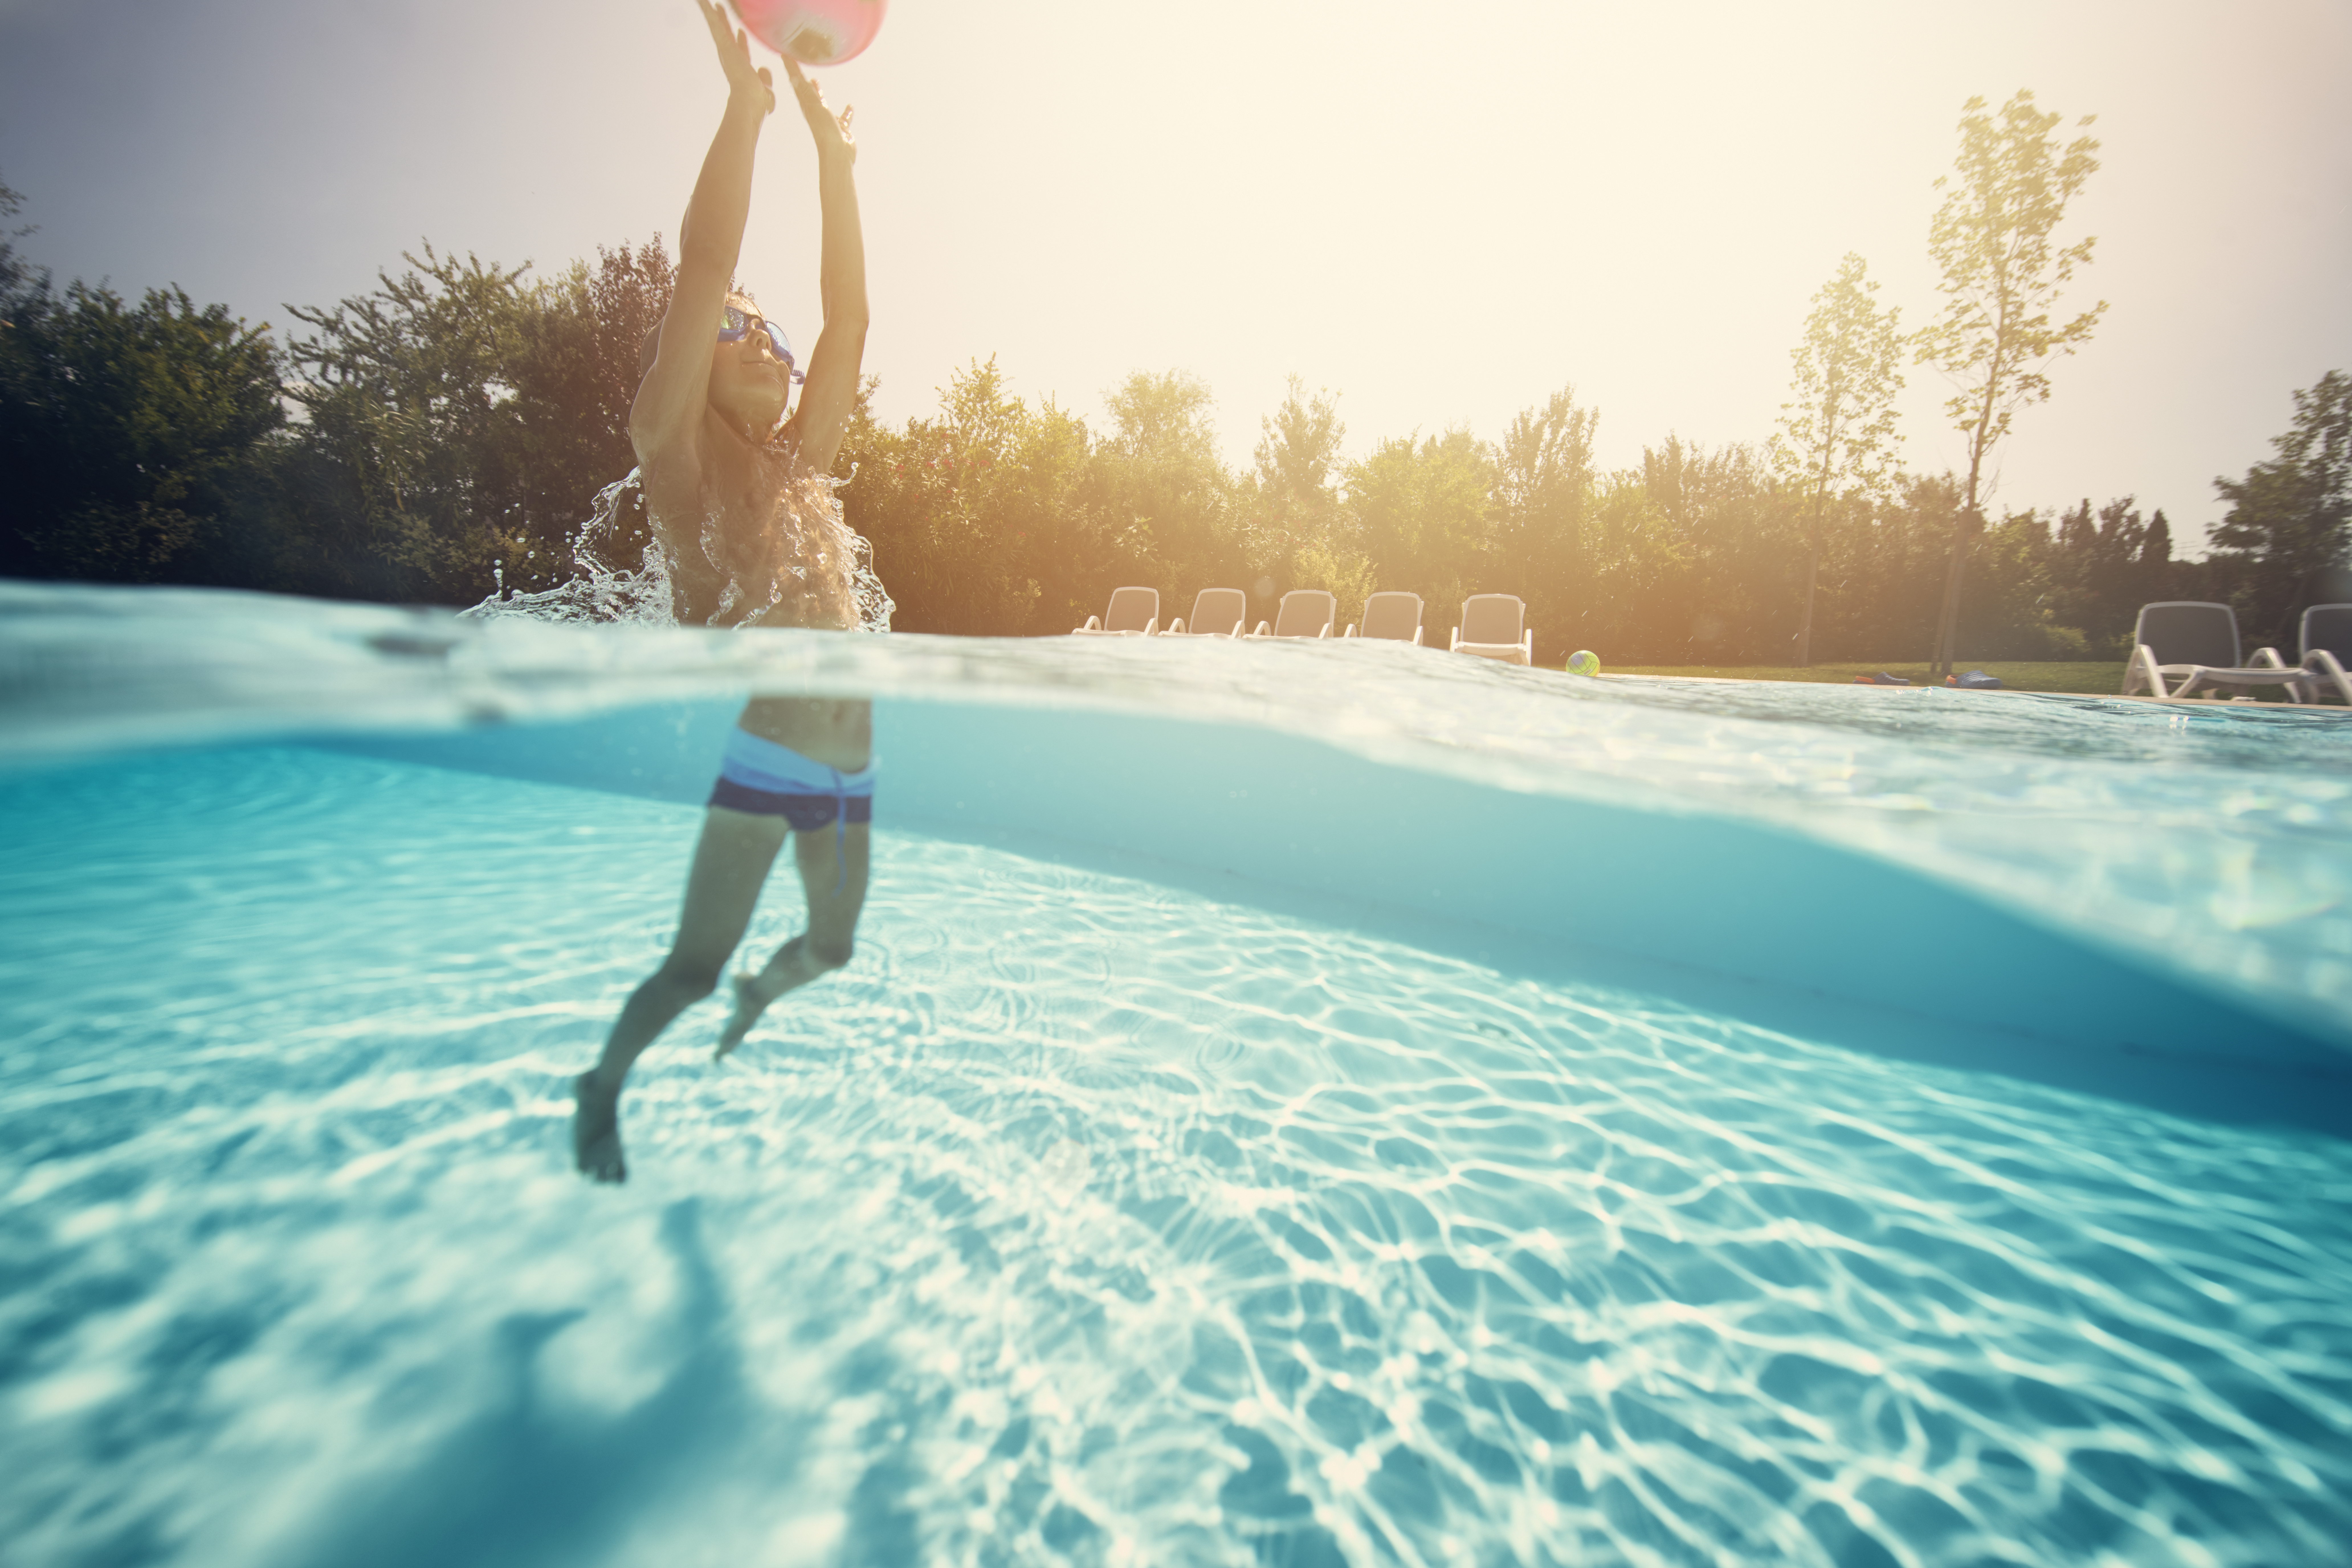 How Long Does It Take to Fill a 5,000-Gallon Pool?   Home Guides ...